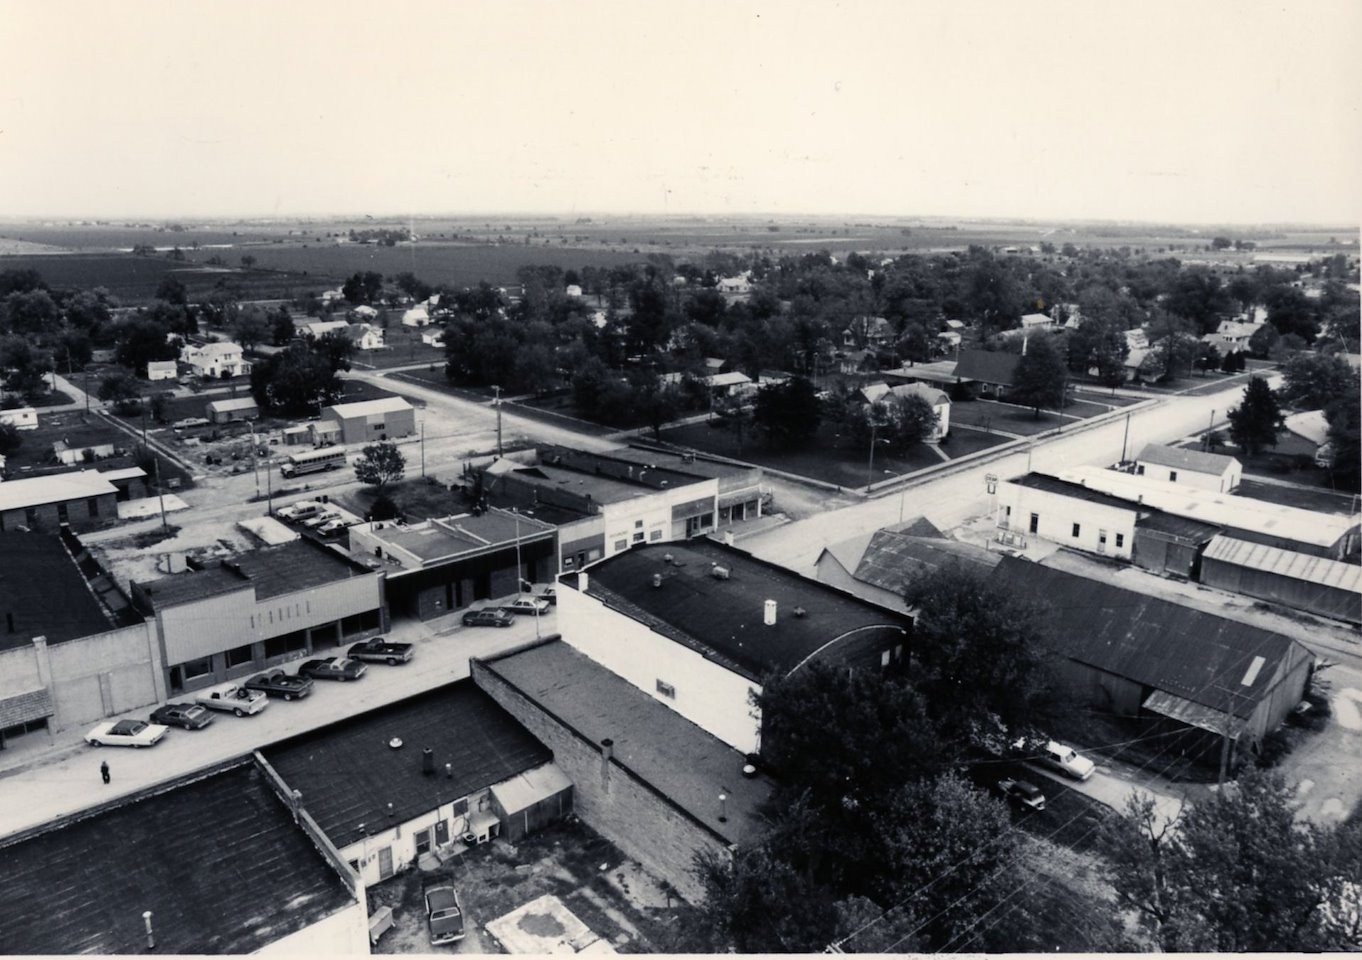 An aerial view of a street lined with businesses and cars.